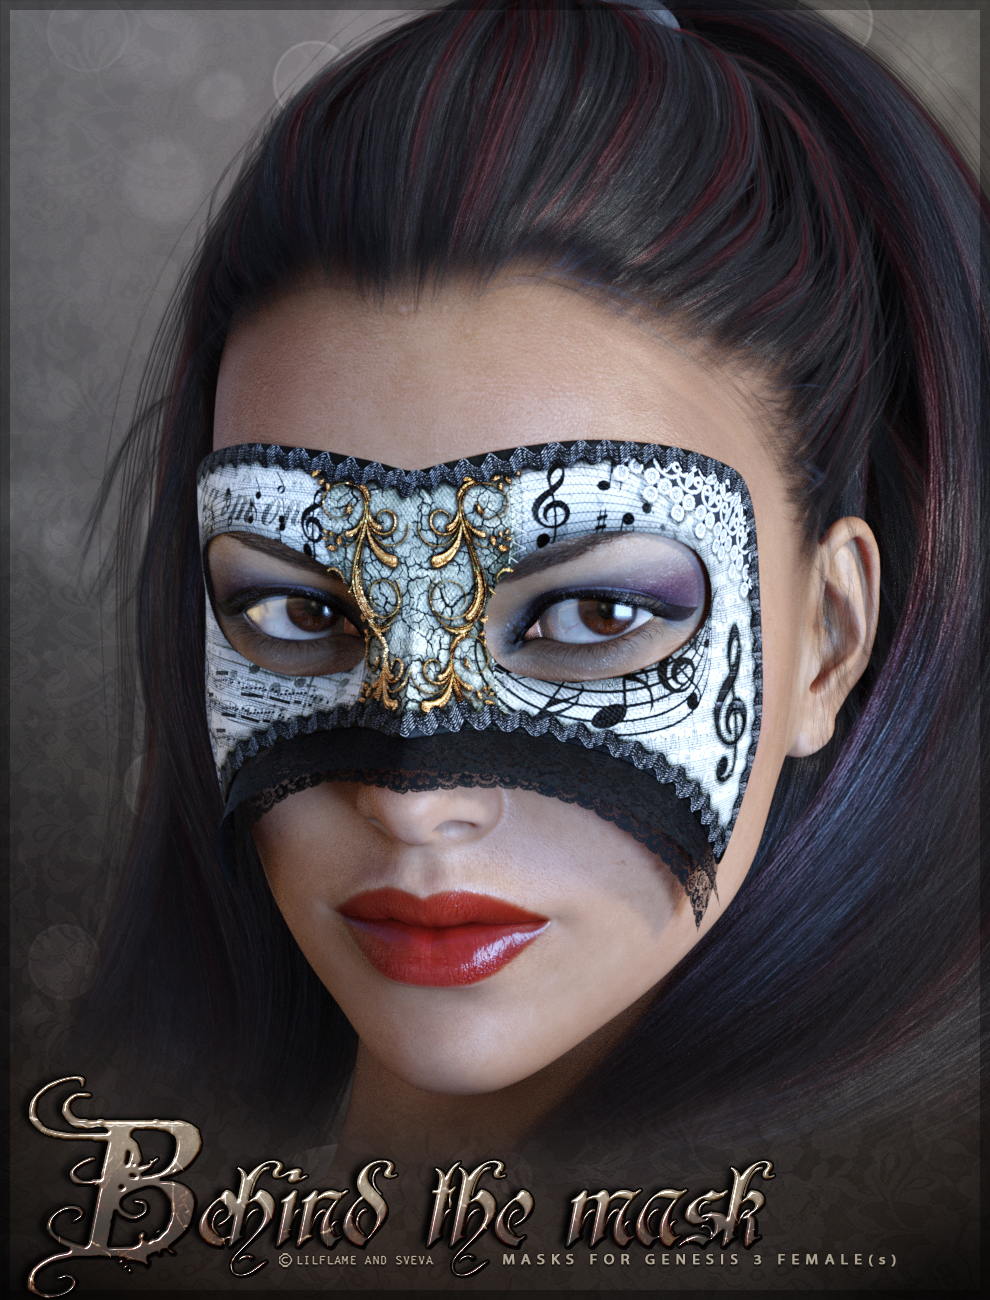 Behind the Mask Genesis 3 Females